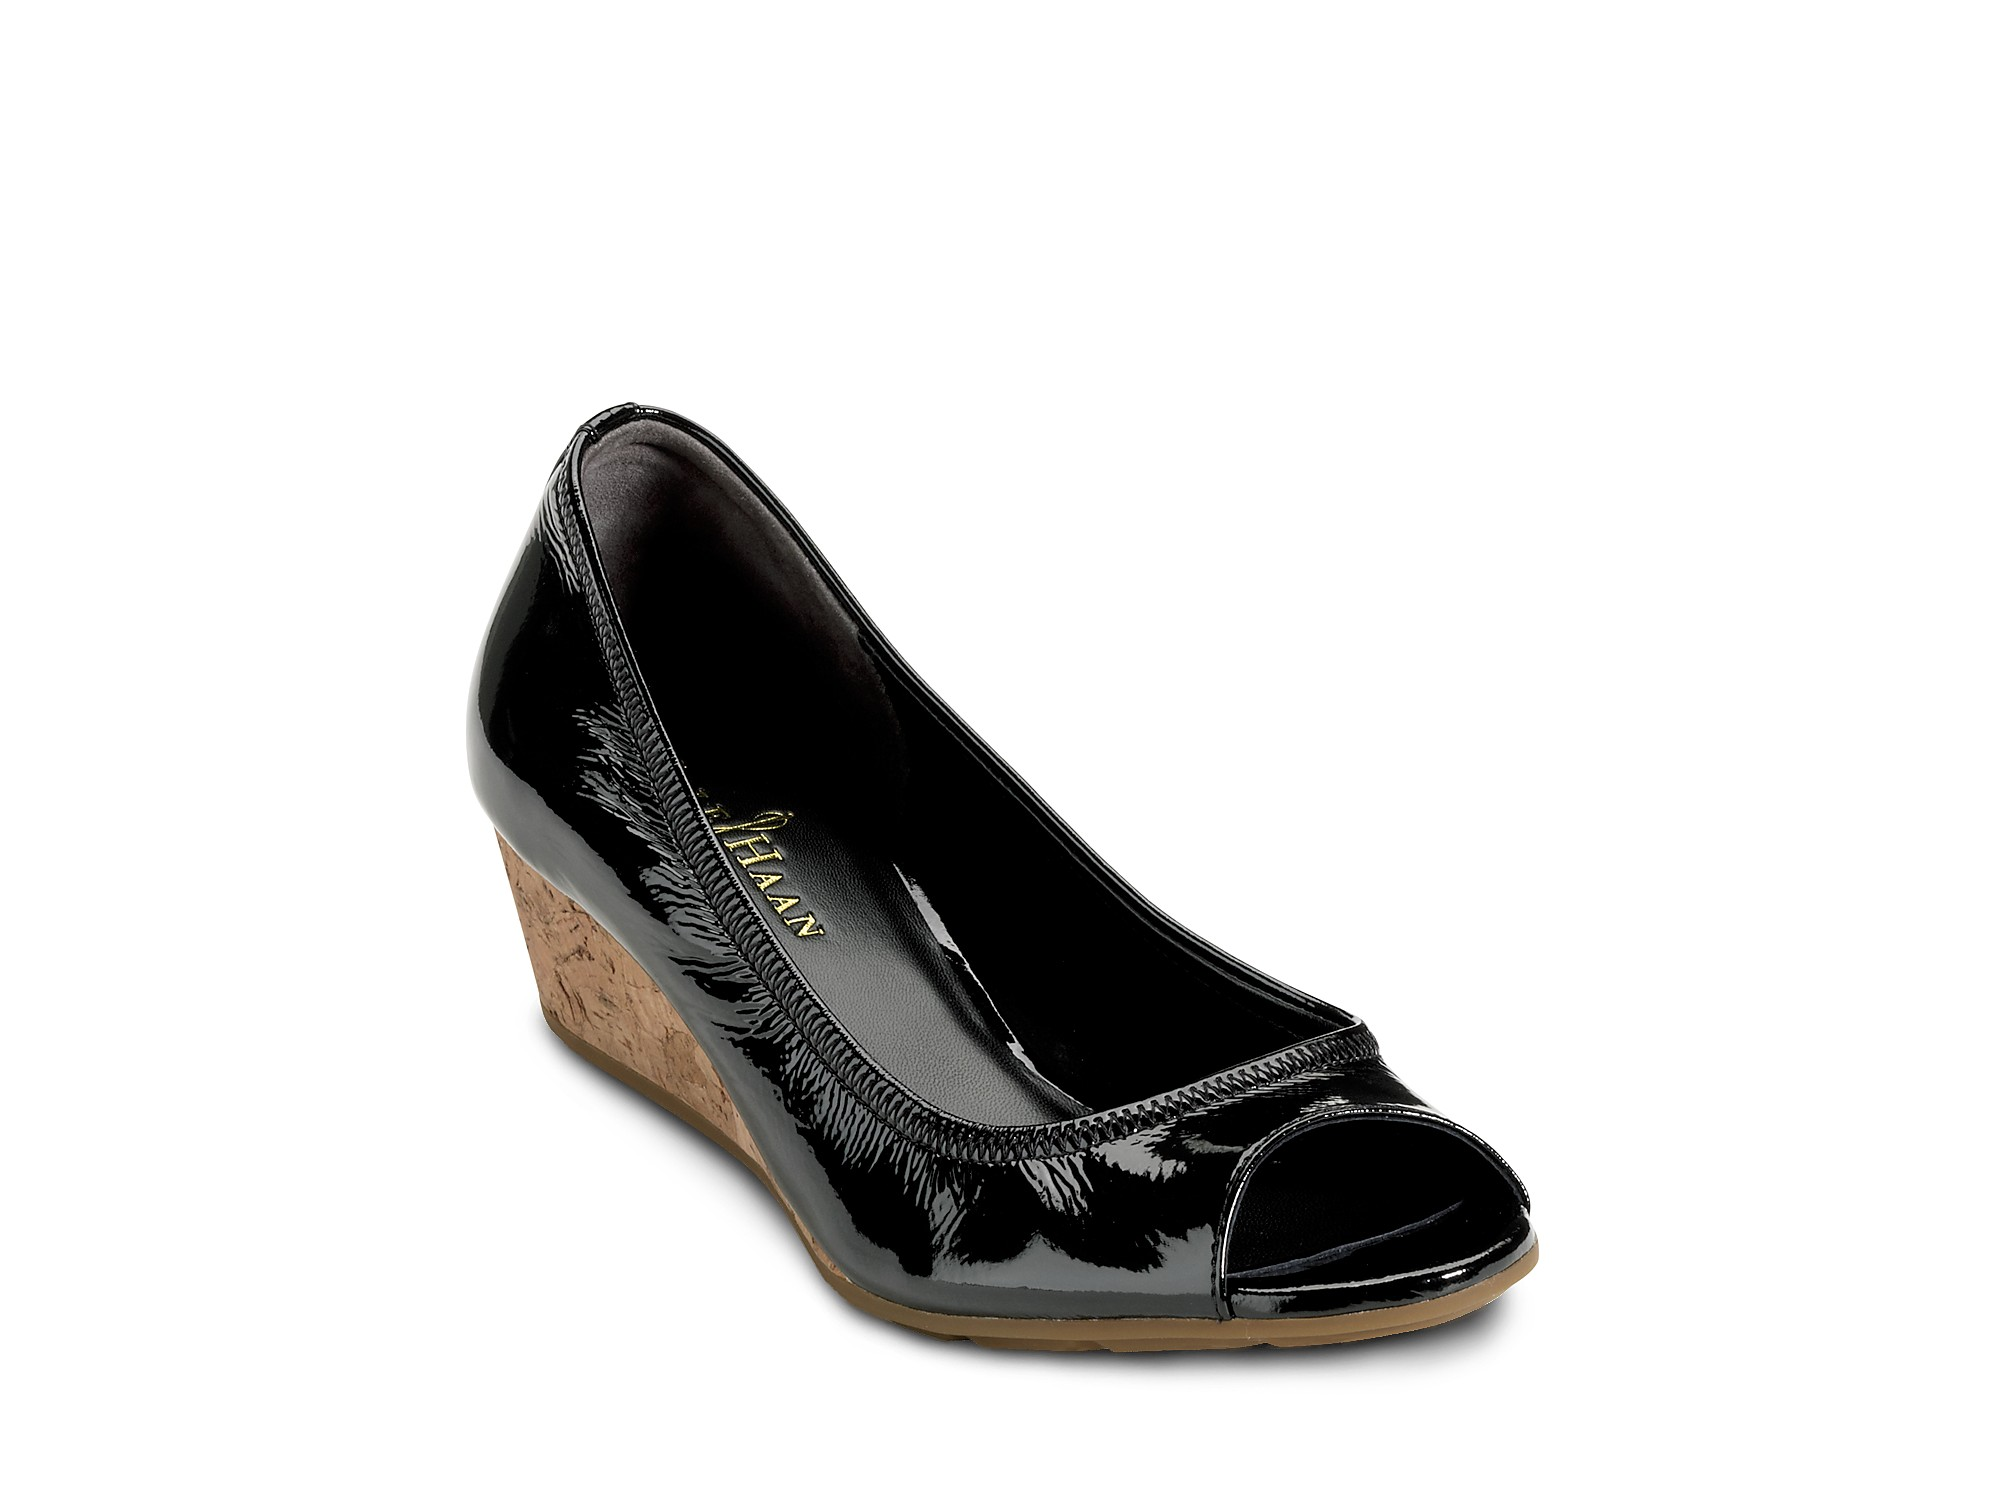 868b8a8b1bb7 Lyst - Cole Haan Wedges Air Nadine Open Toe in Black